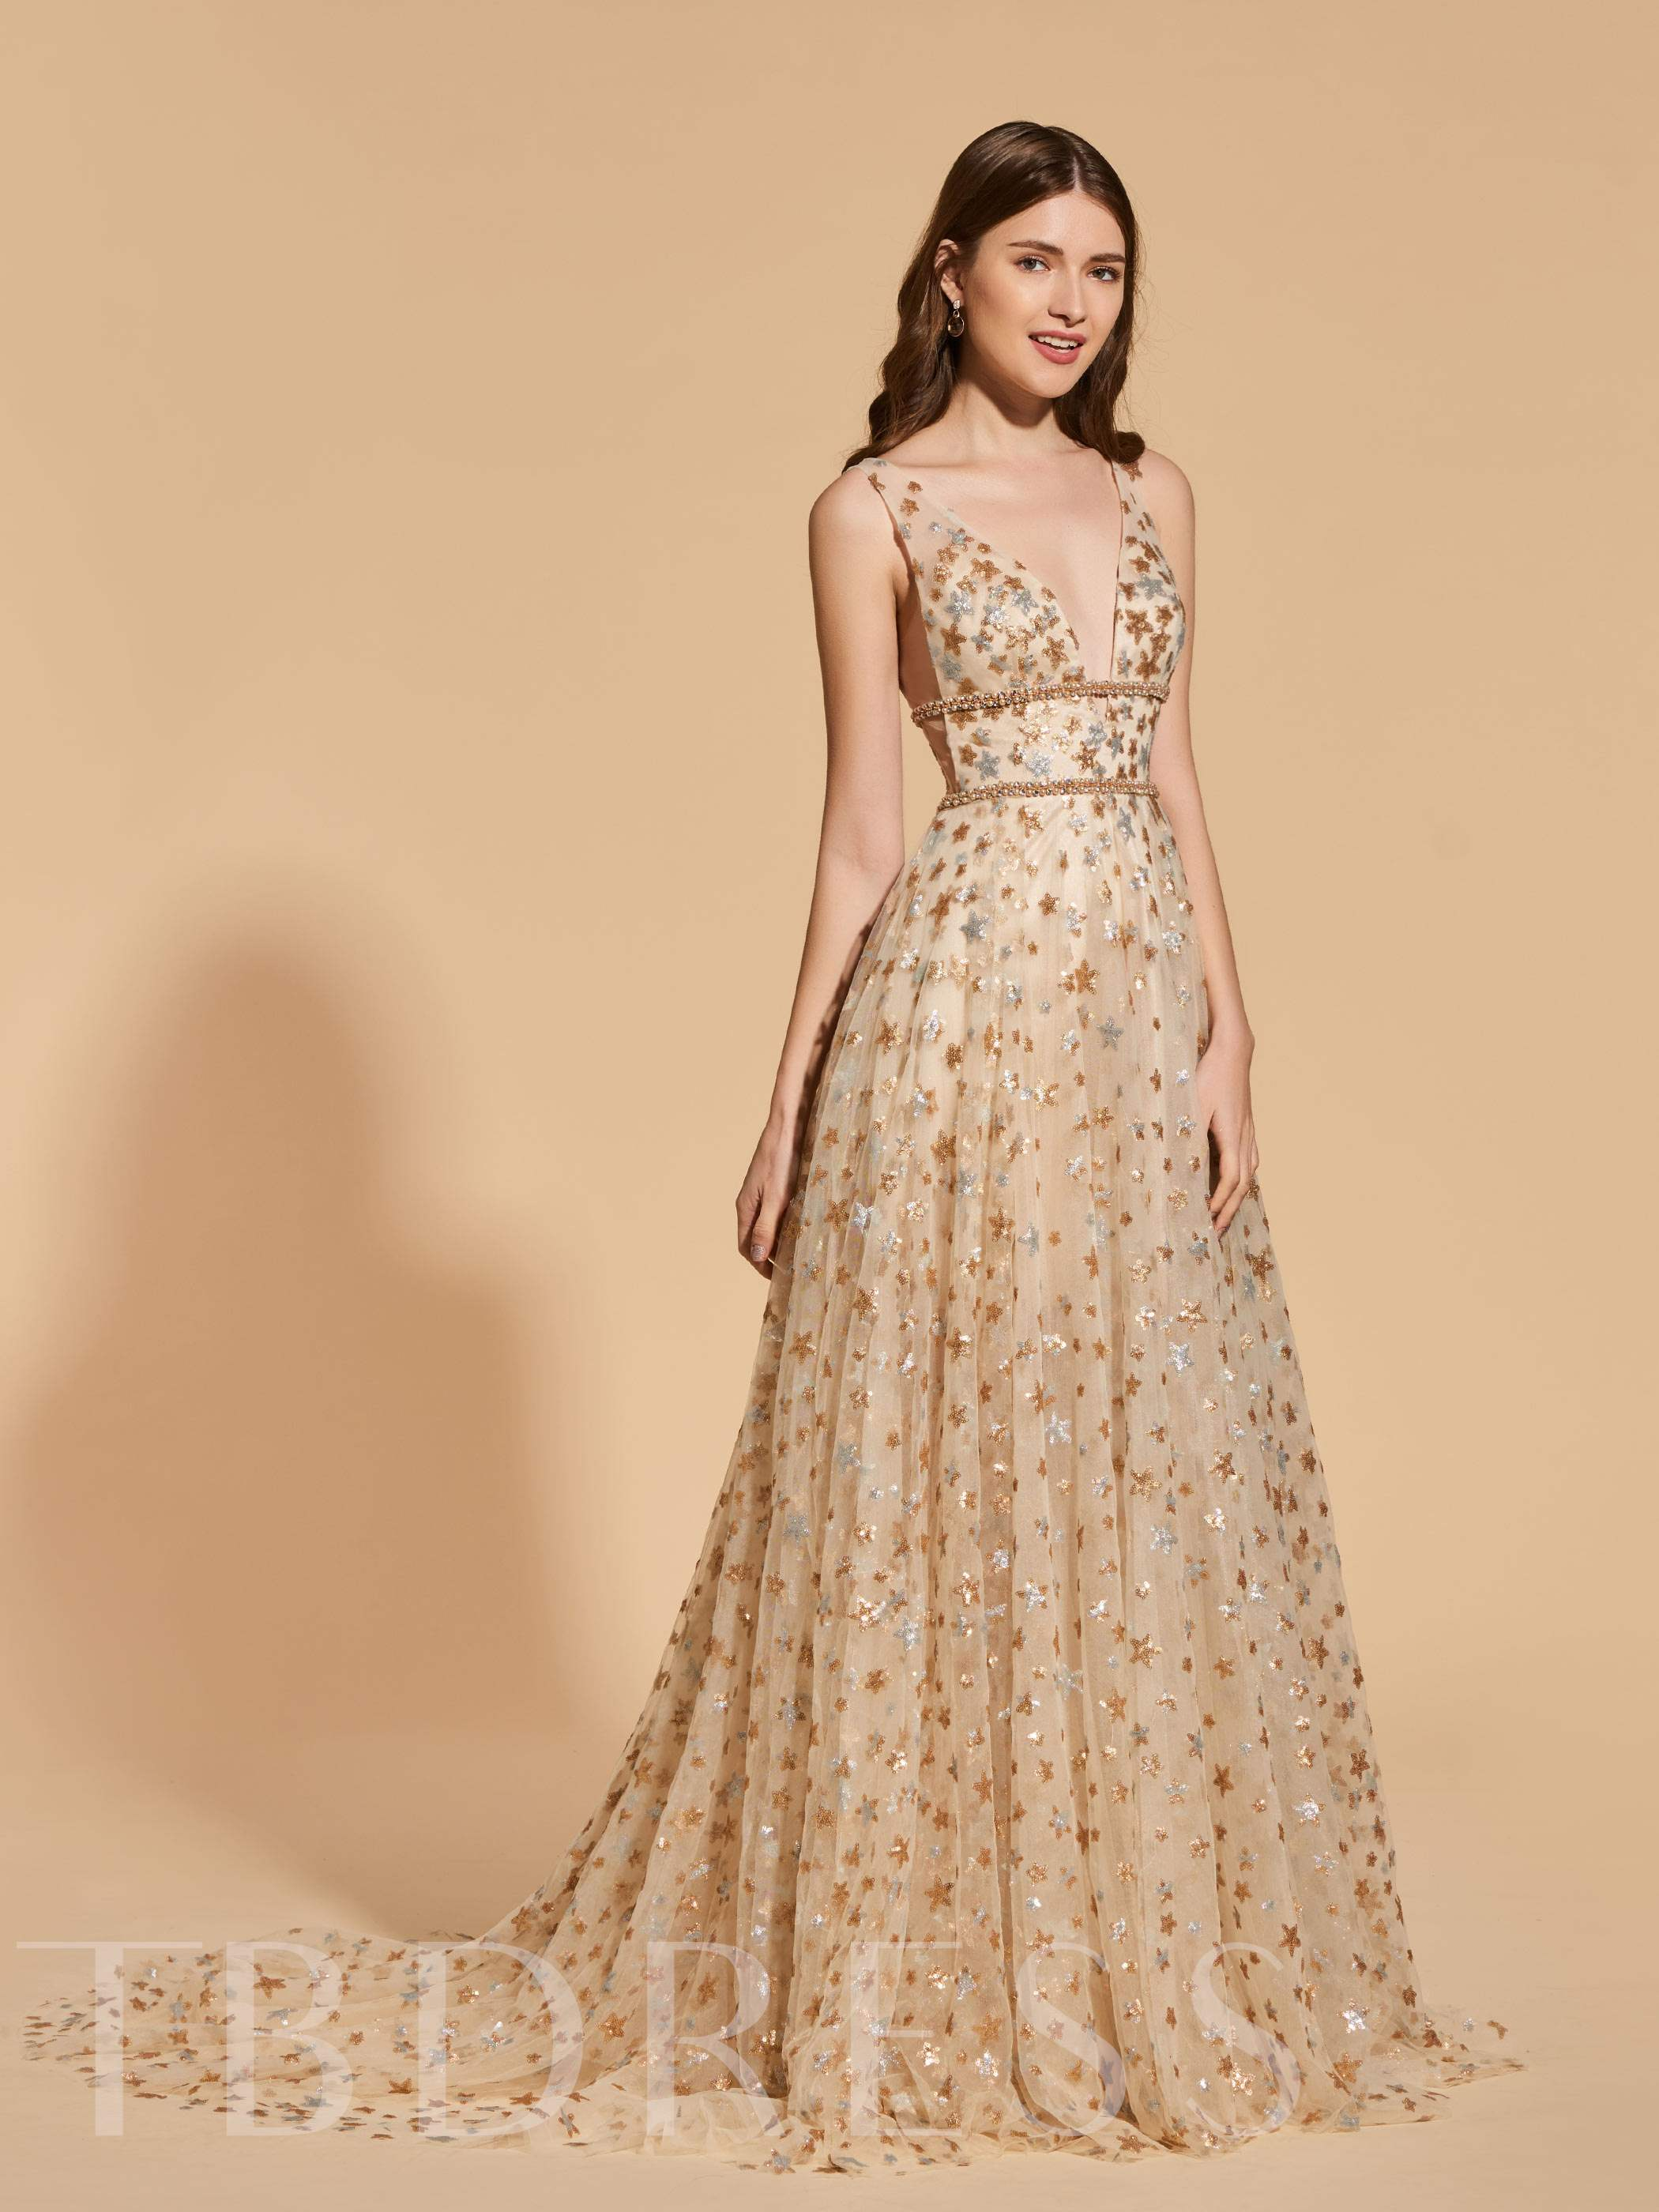 Buy A-Line Empire Lace Beading Prom Dress, Spring,Summer,Fall,Winter, 13161253 for $159.85 in TBDress store